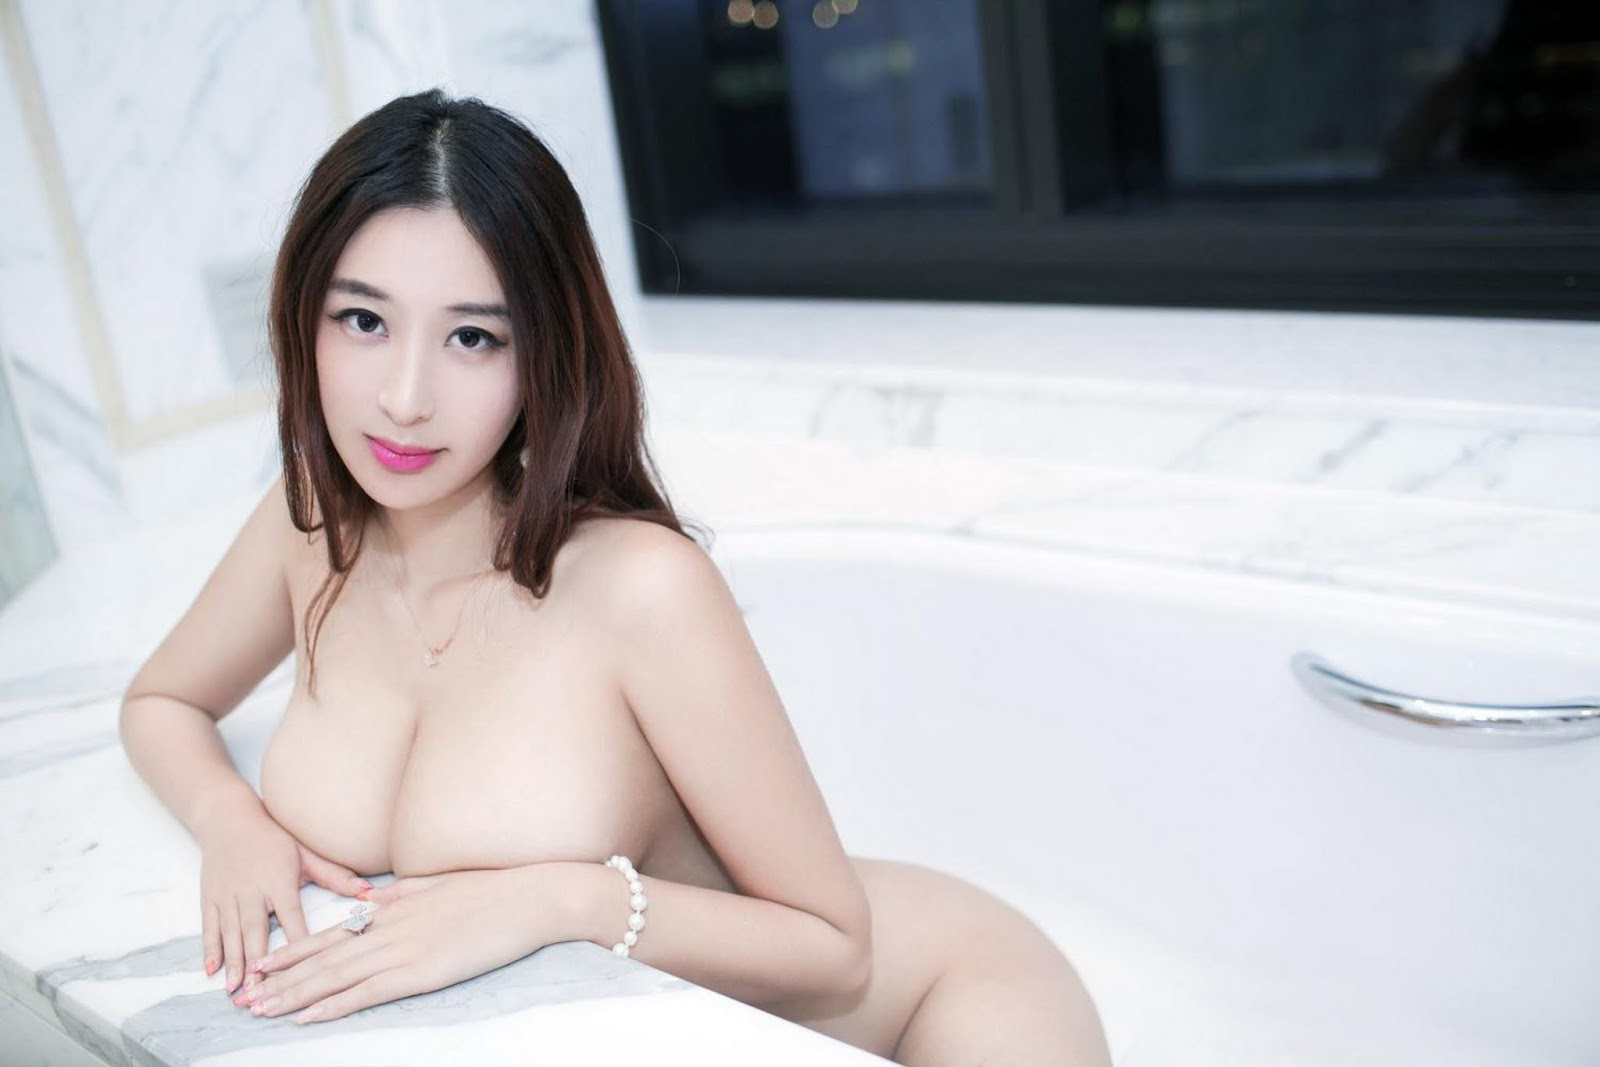 36 - Lake Model Sexy TUIGIRL NO.52 Hot